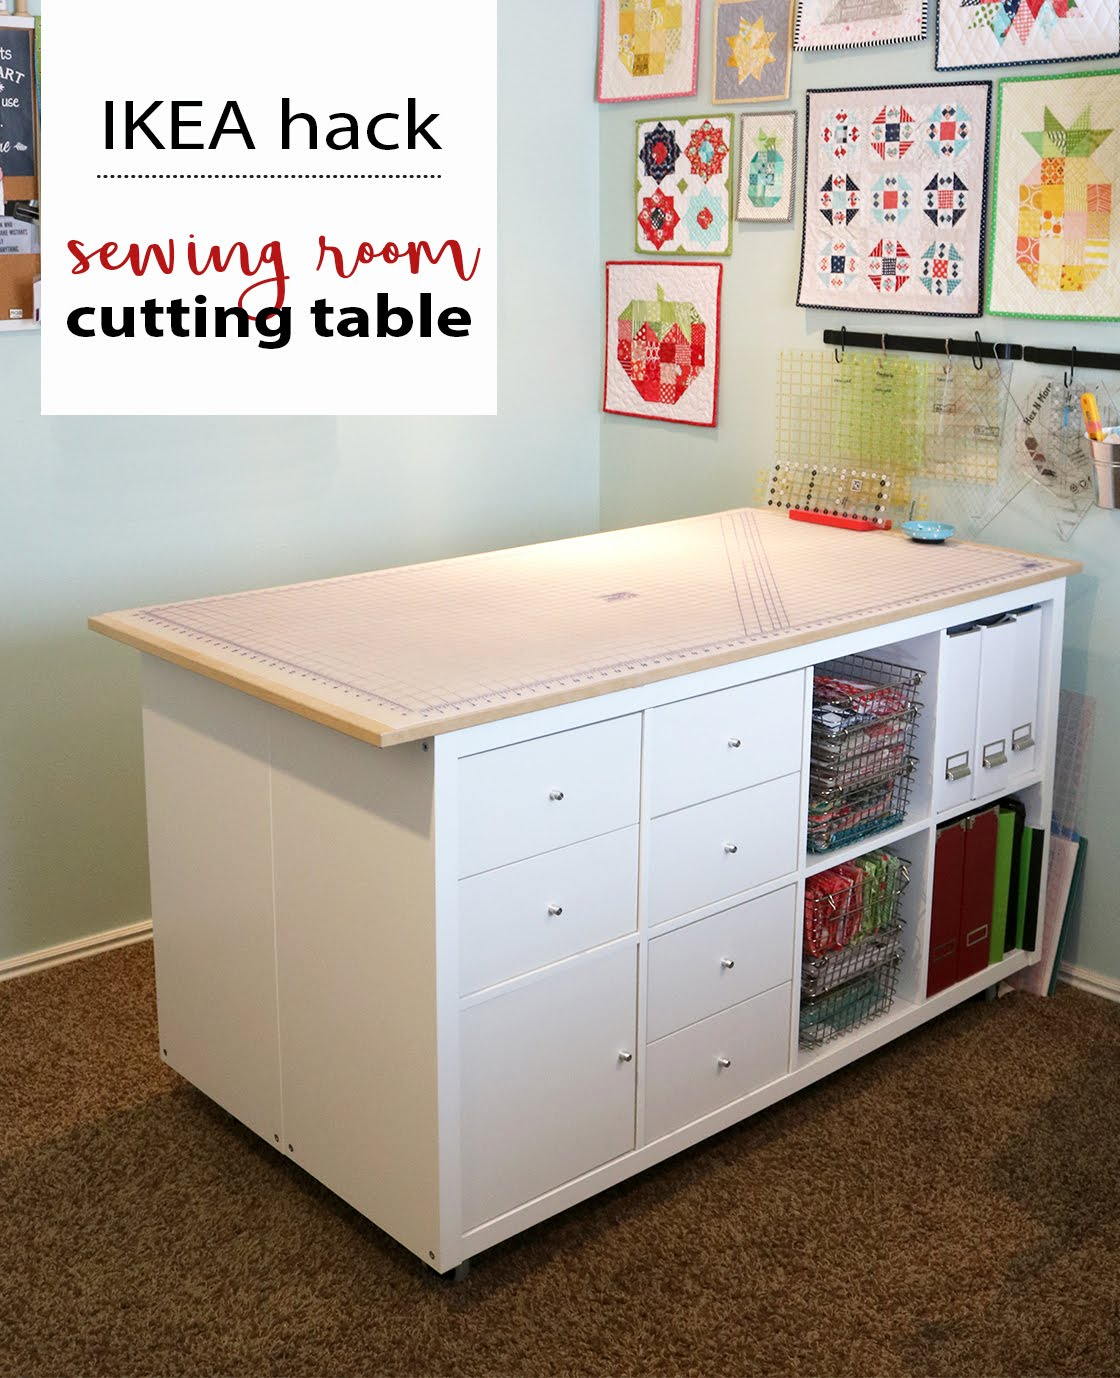 Ikea Hacks A Bright Corner Diy Sewing Room Cutting Table Ikea Hack